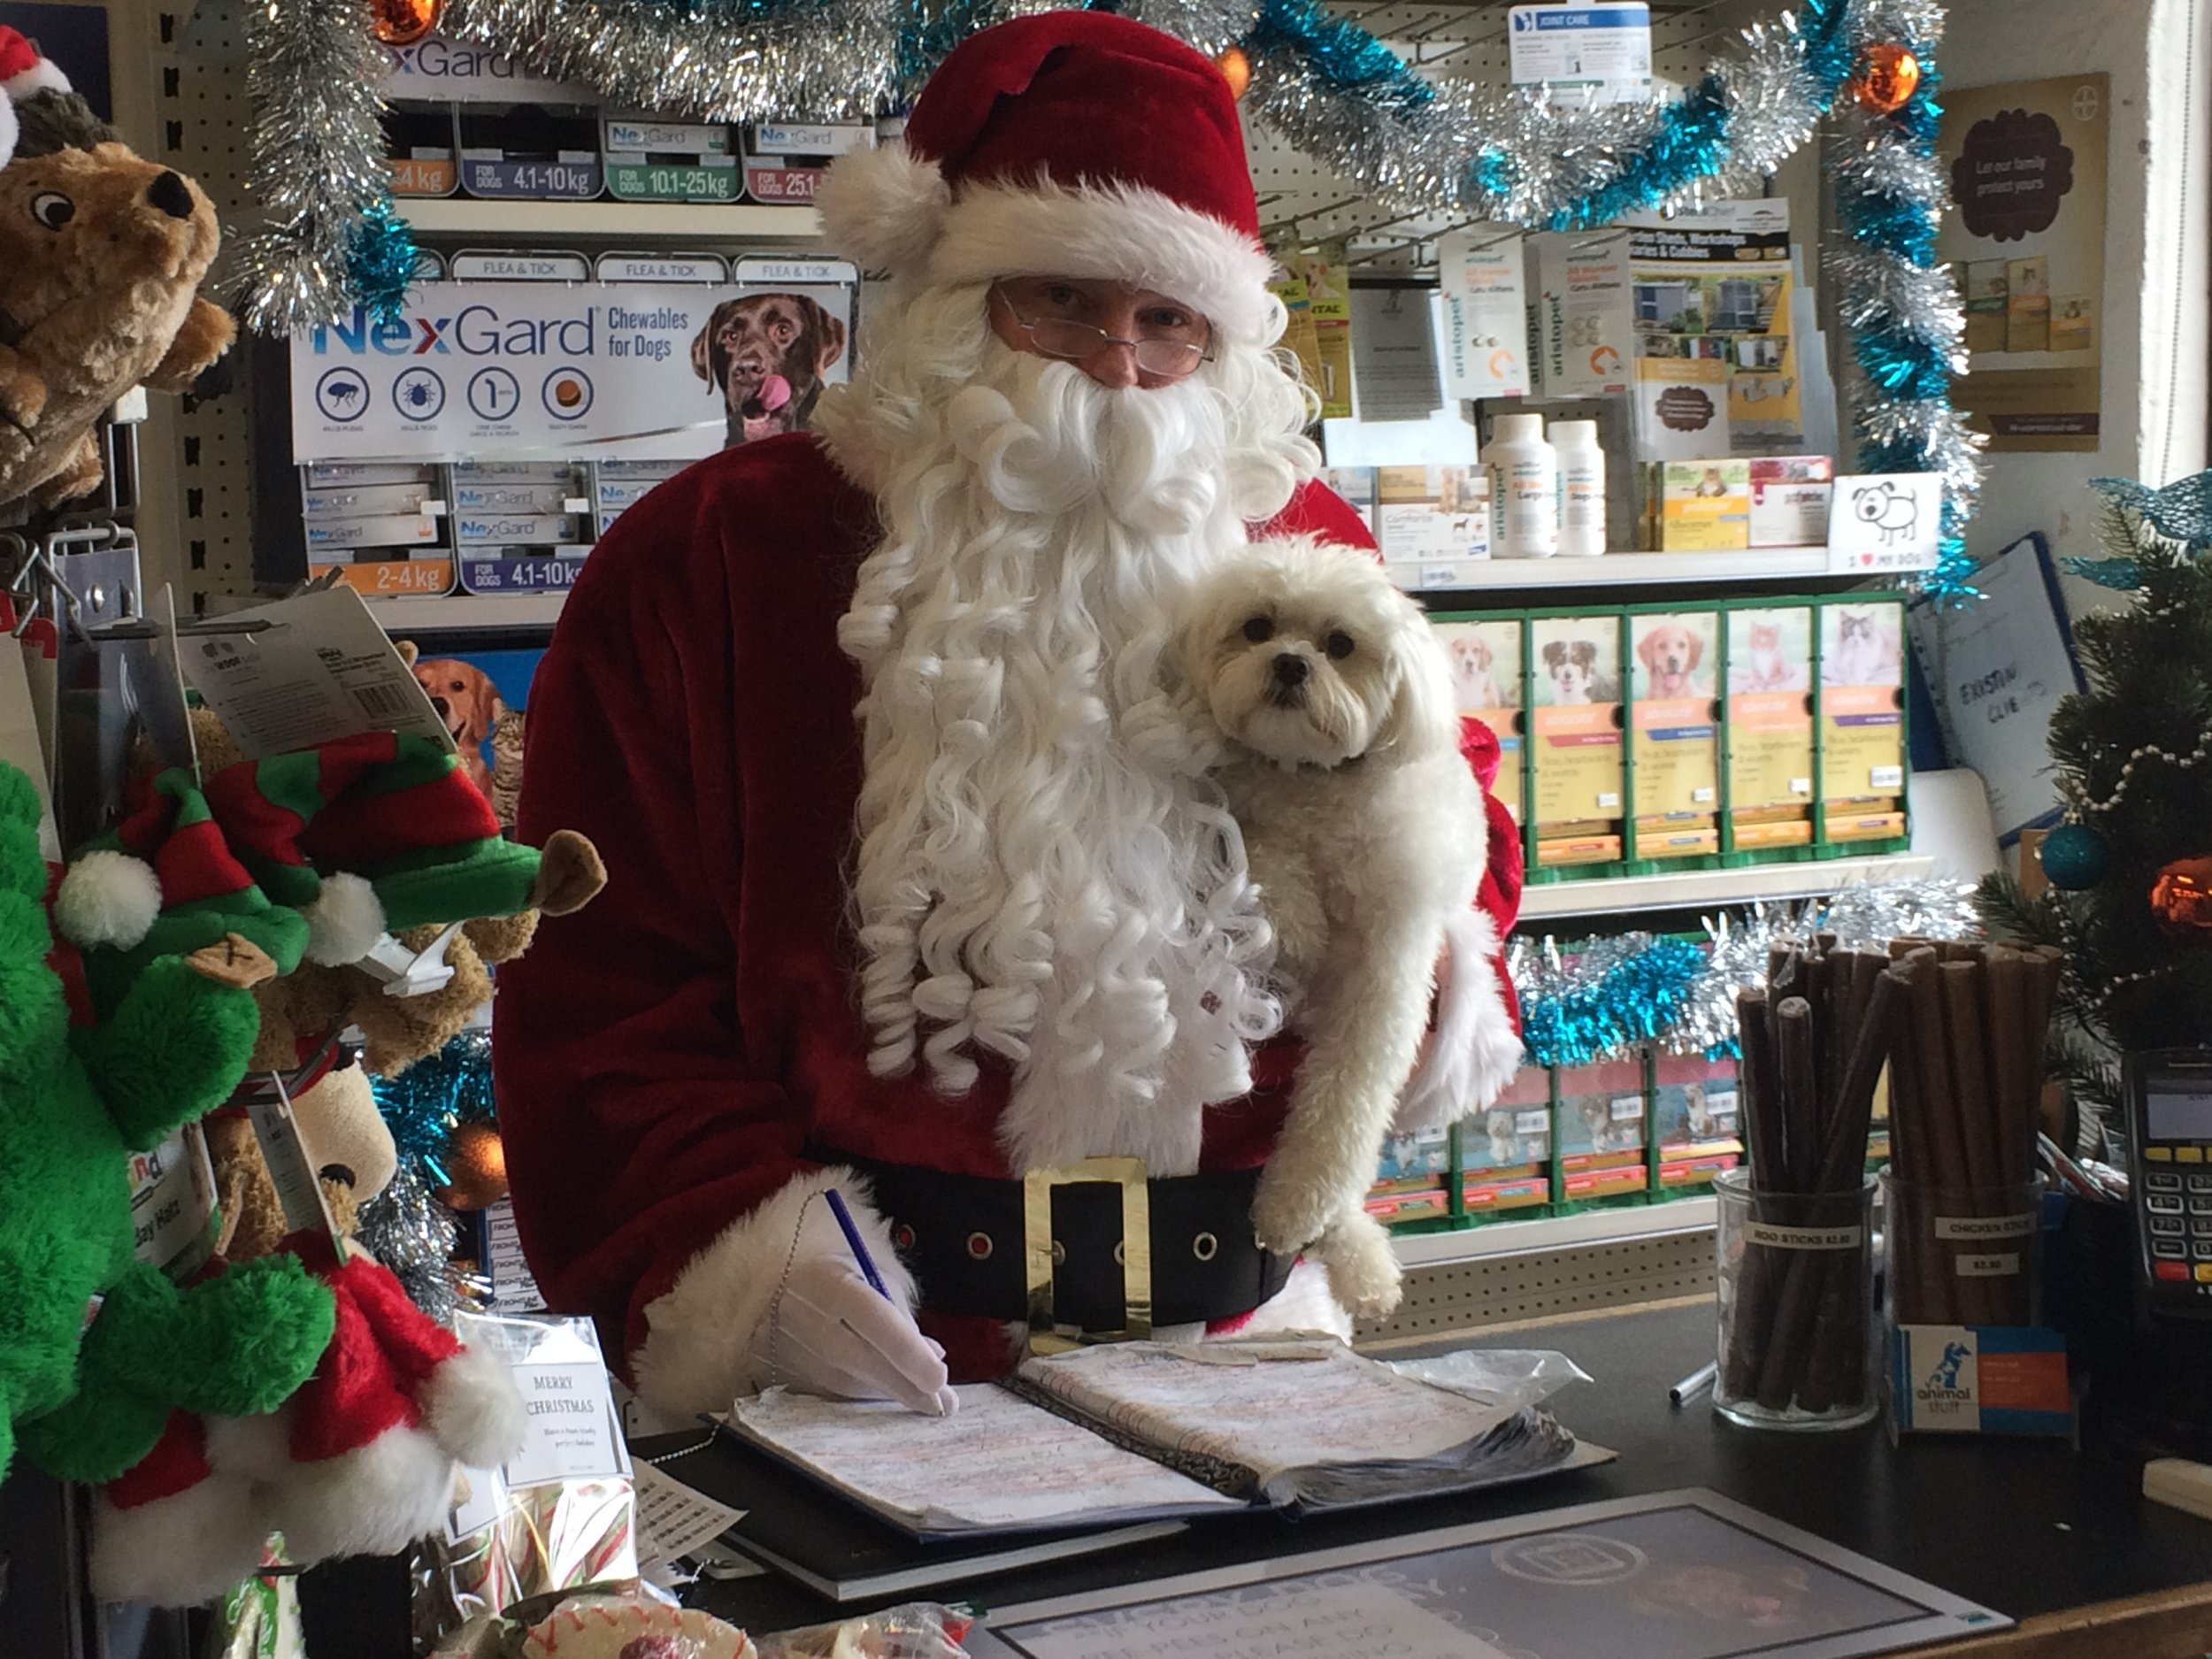 sANTA & mURPHY BOOKING IN A NEW GROOMING APPOINTMENT